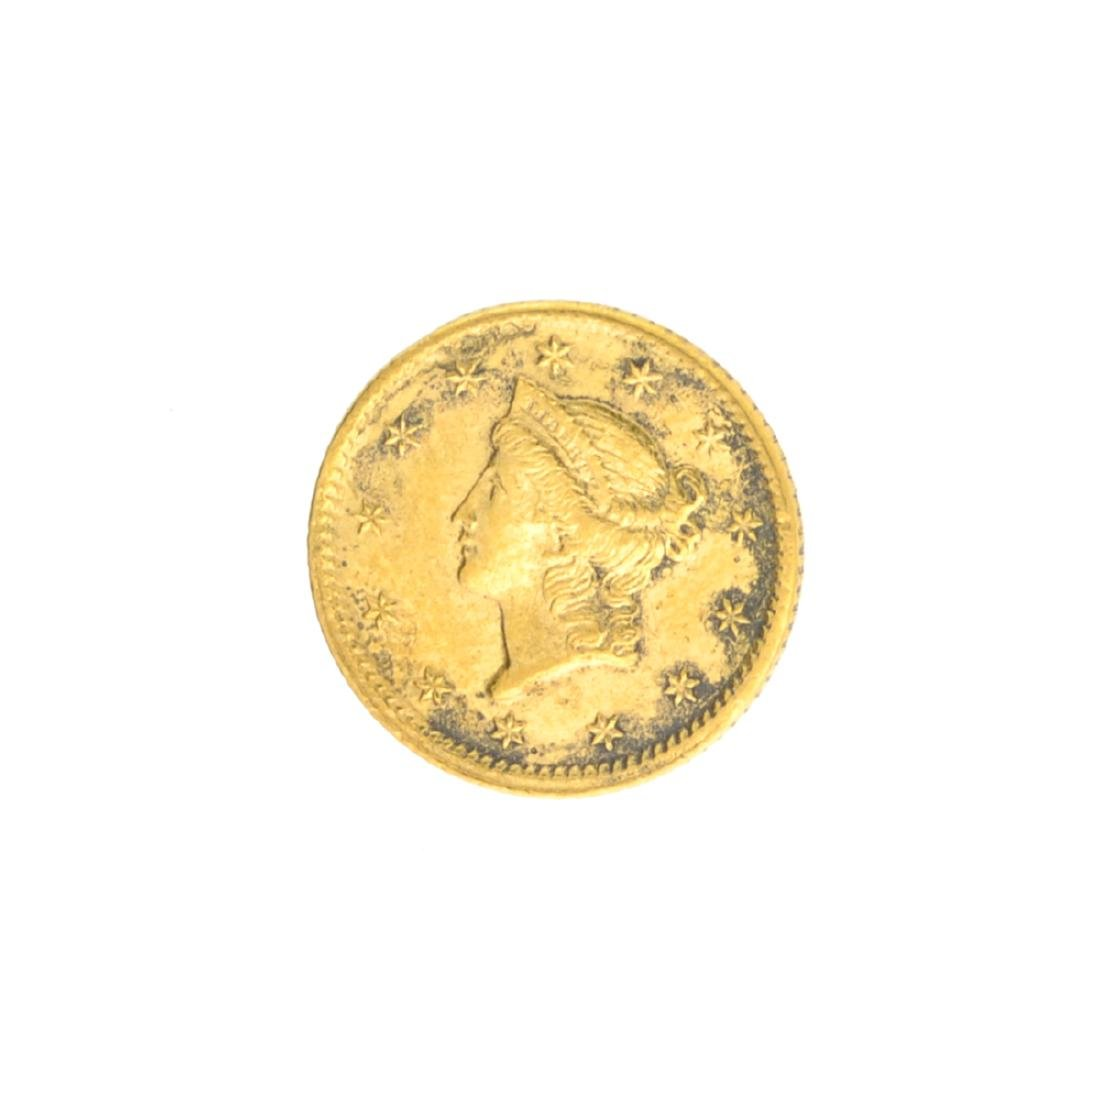 Very Rare 1851 $1 U.S. Liberty Head Gold Coin Great